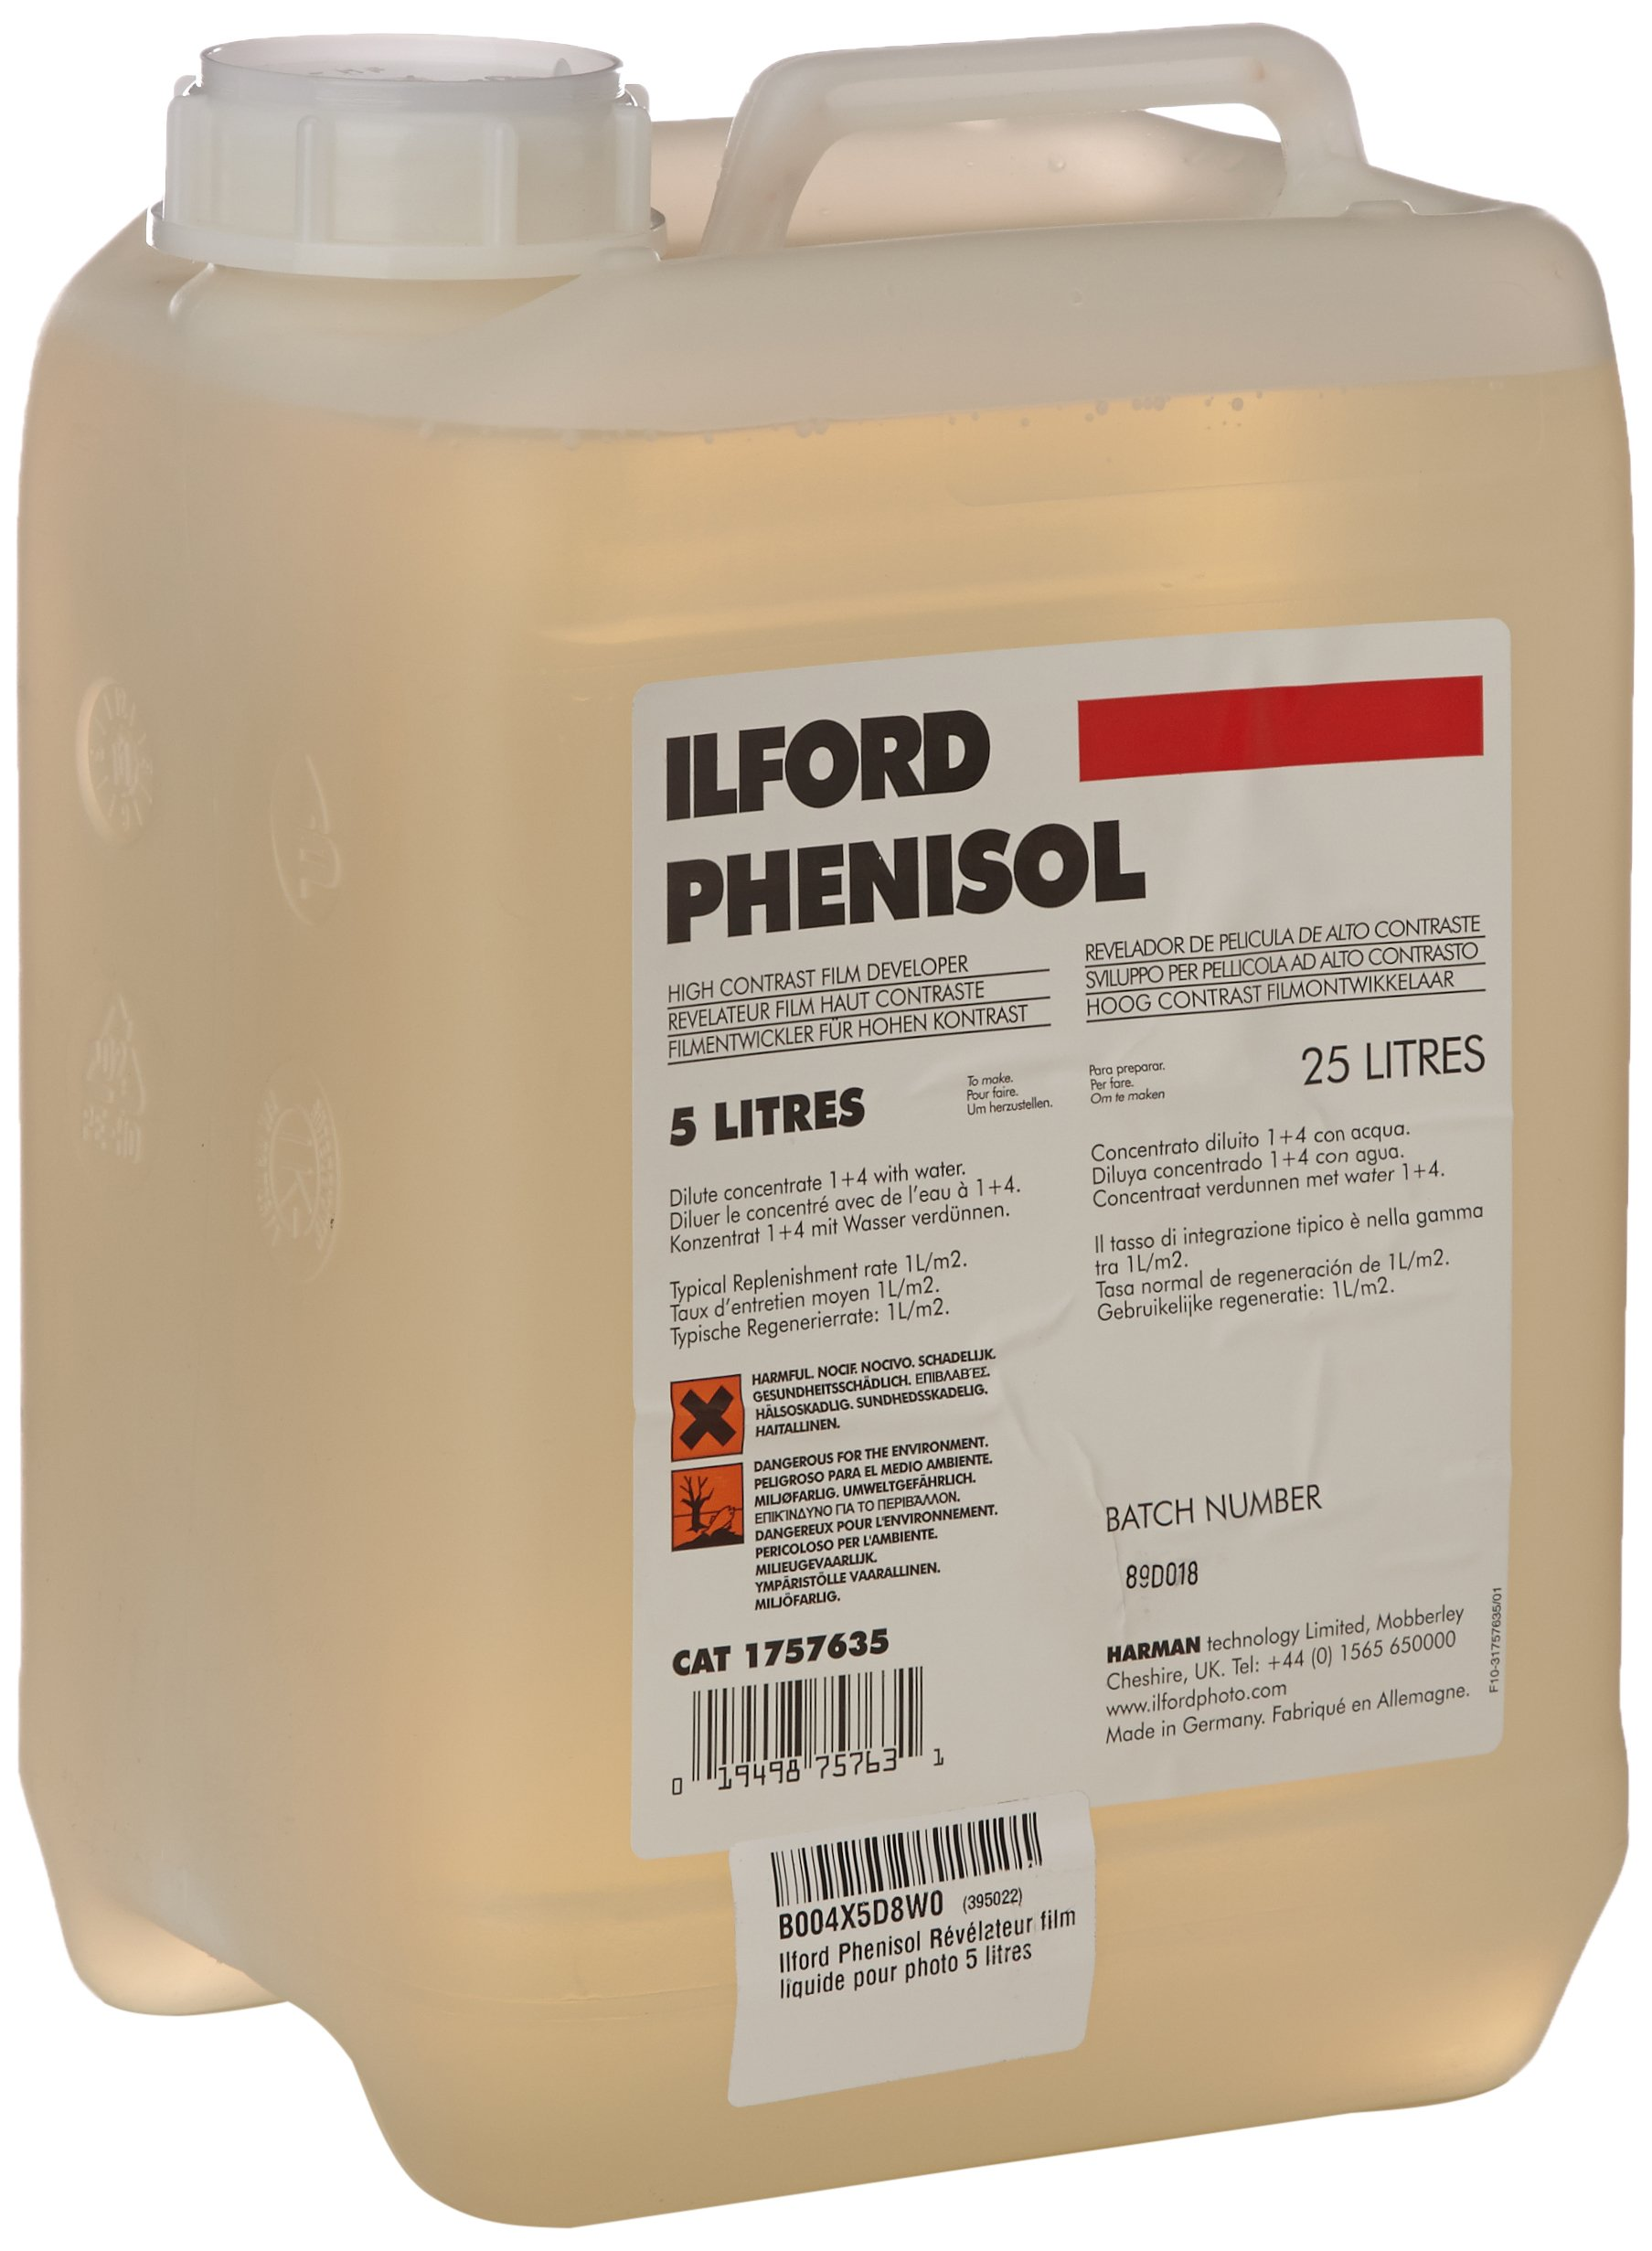 Ilford Phenisol X-Ray Developer, 5 Liters by Ilford